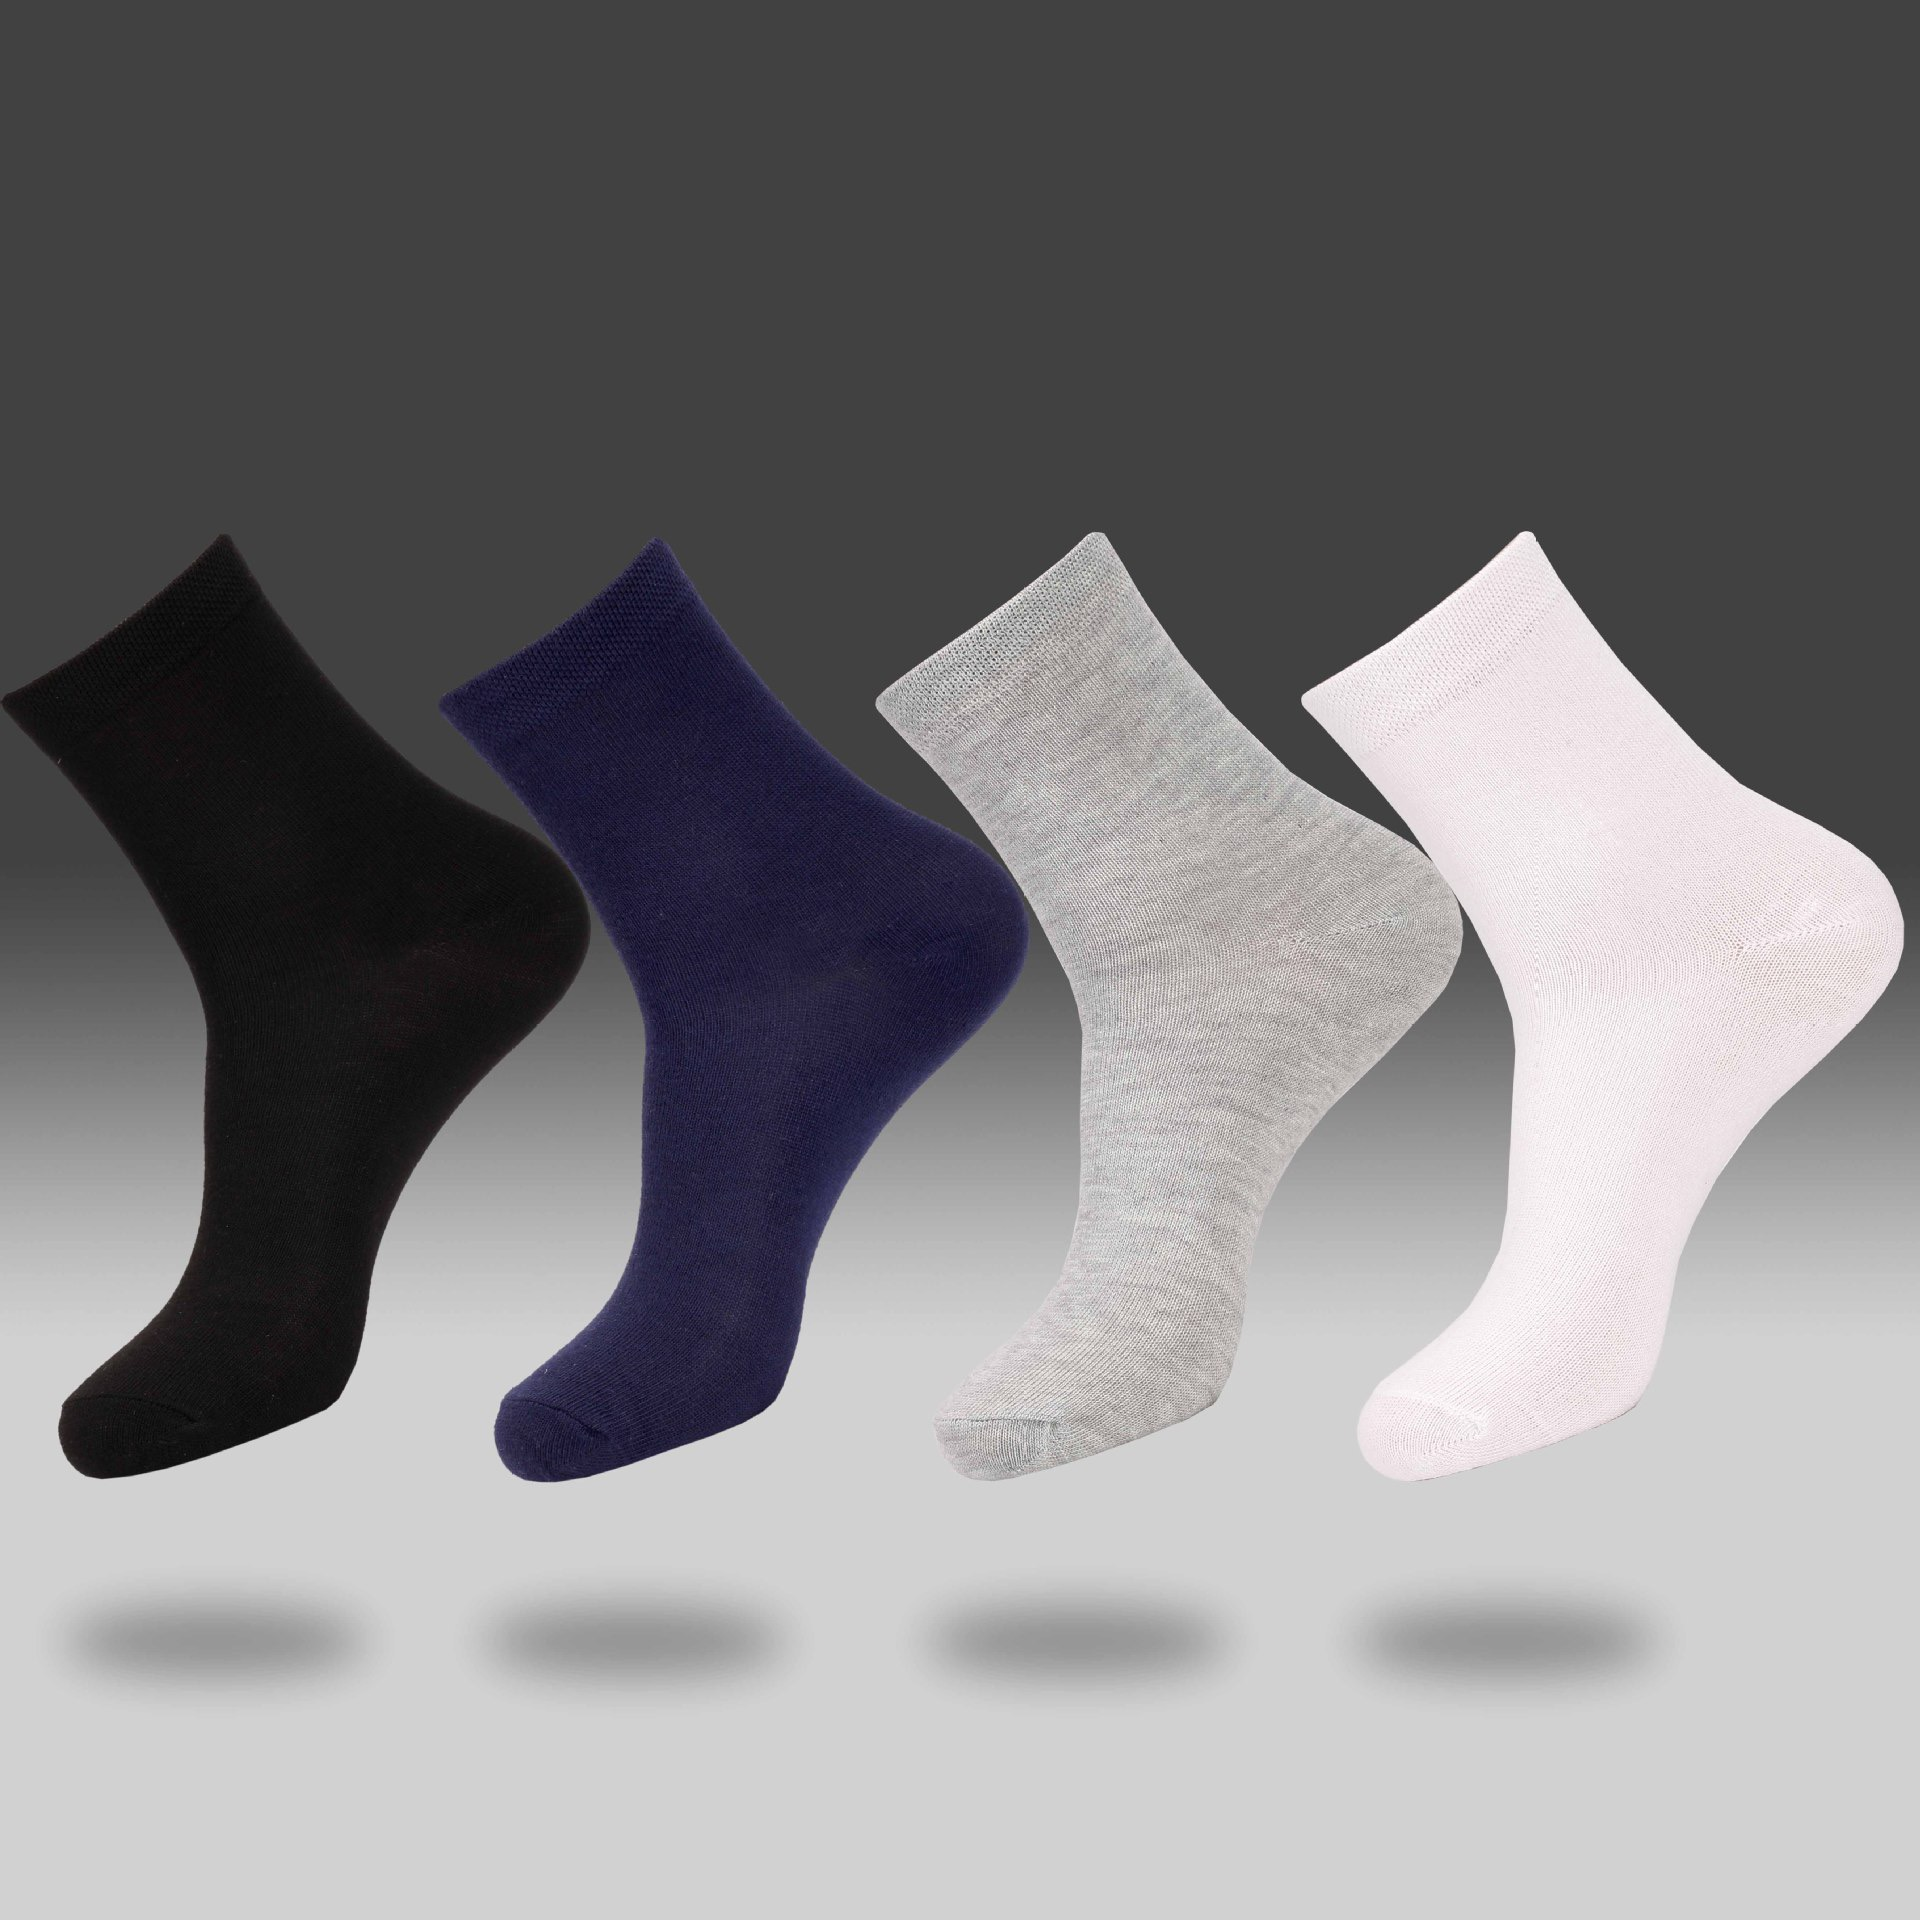 Men's Sports Socks, Sweat-absorbent And Non-smelling Feet, Five Colors Available